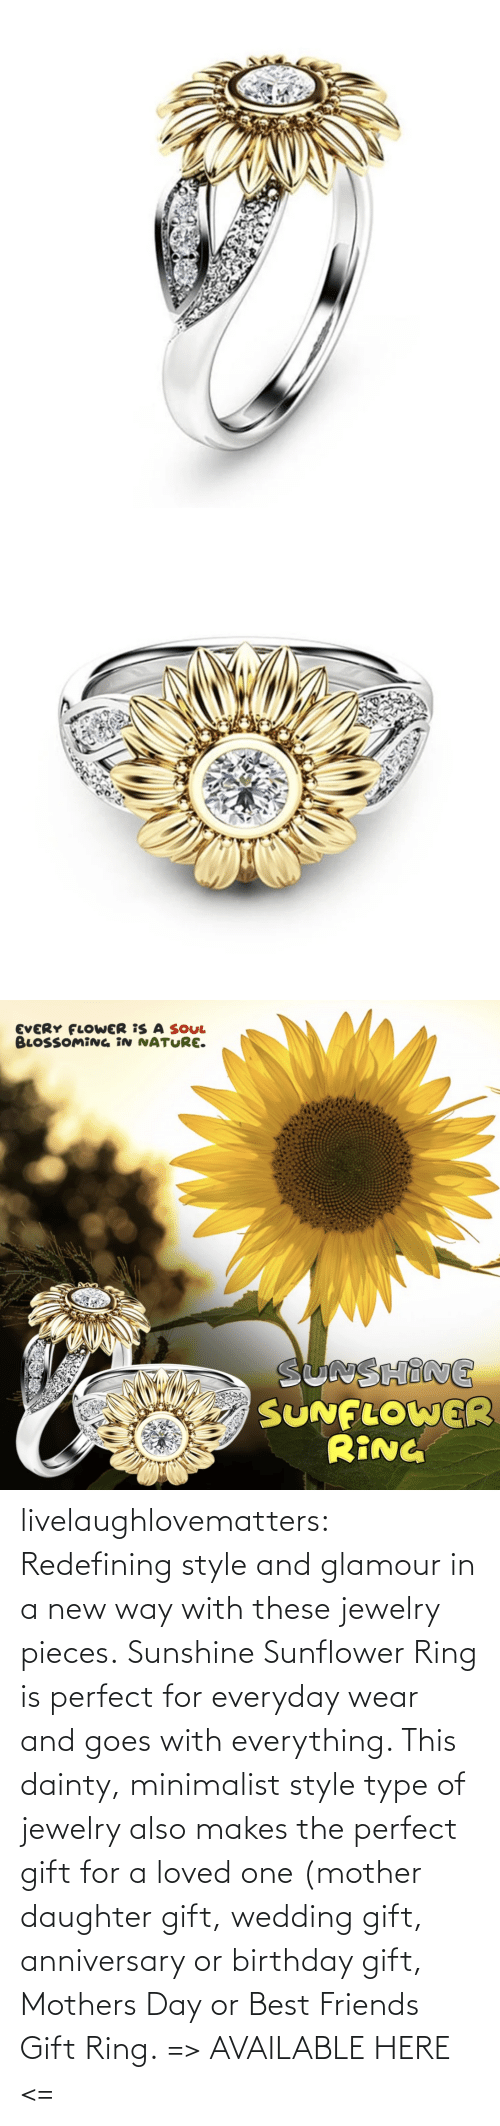 Pieces: livelaughlovematters: Redefining style and glamour in a new way with these jewelry pieces. Sunshine Sunflower Ring is perfect for everyday wear and goes with everything. This dainty, minimalist style type of jewelry also makes the perfect gift for a loved one (mother daughter gift, wedding gift, anniversary or birthday gift, Mothers Day or Best Friends Gift Ring. => AVAILABLE HERE <=